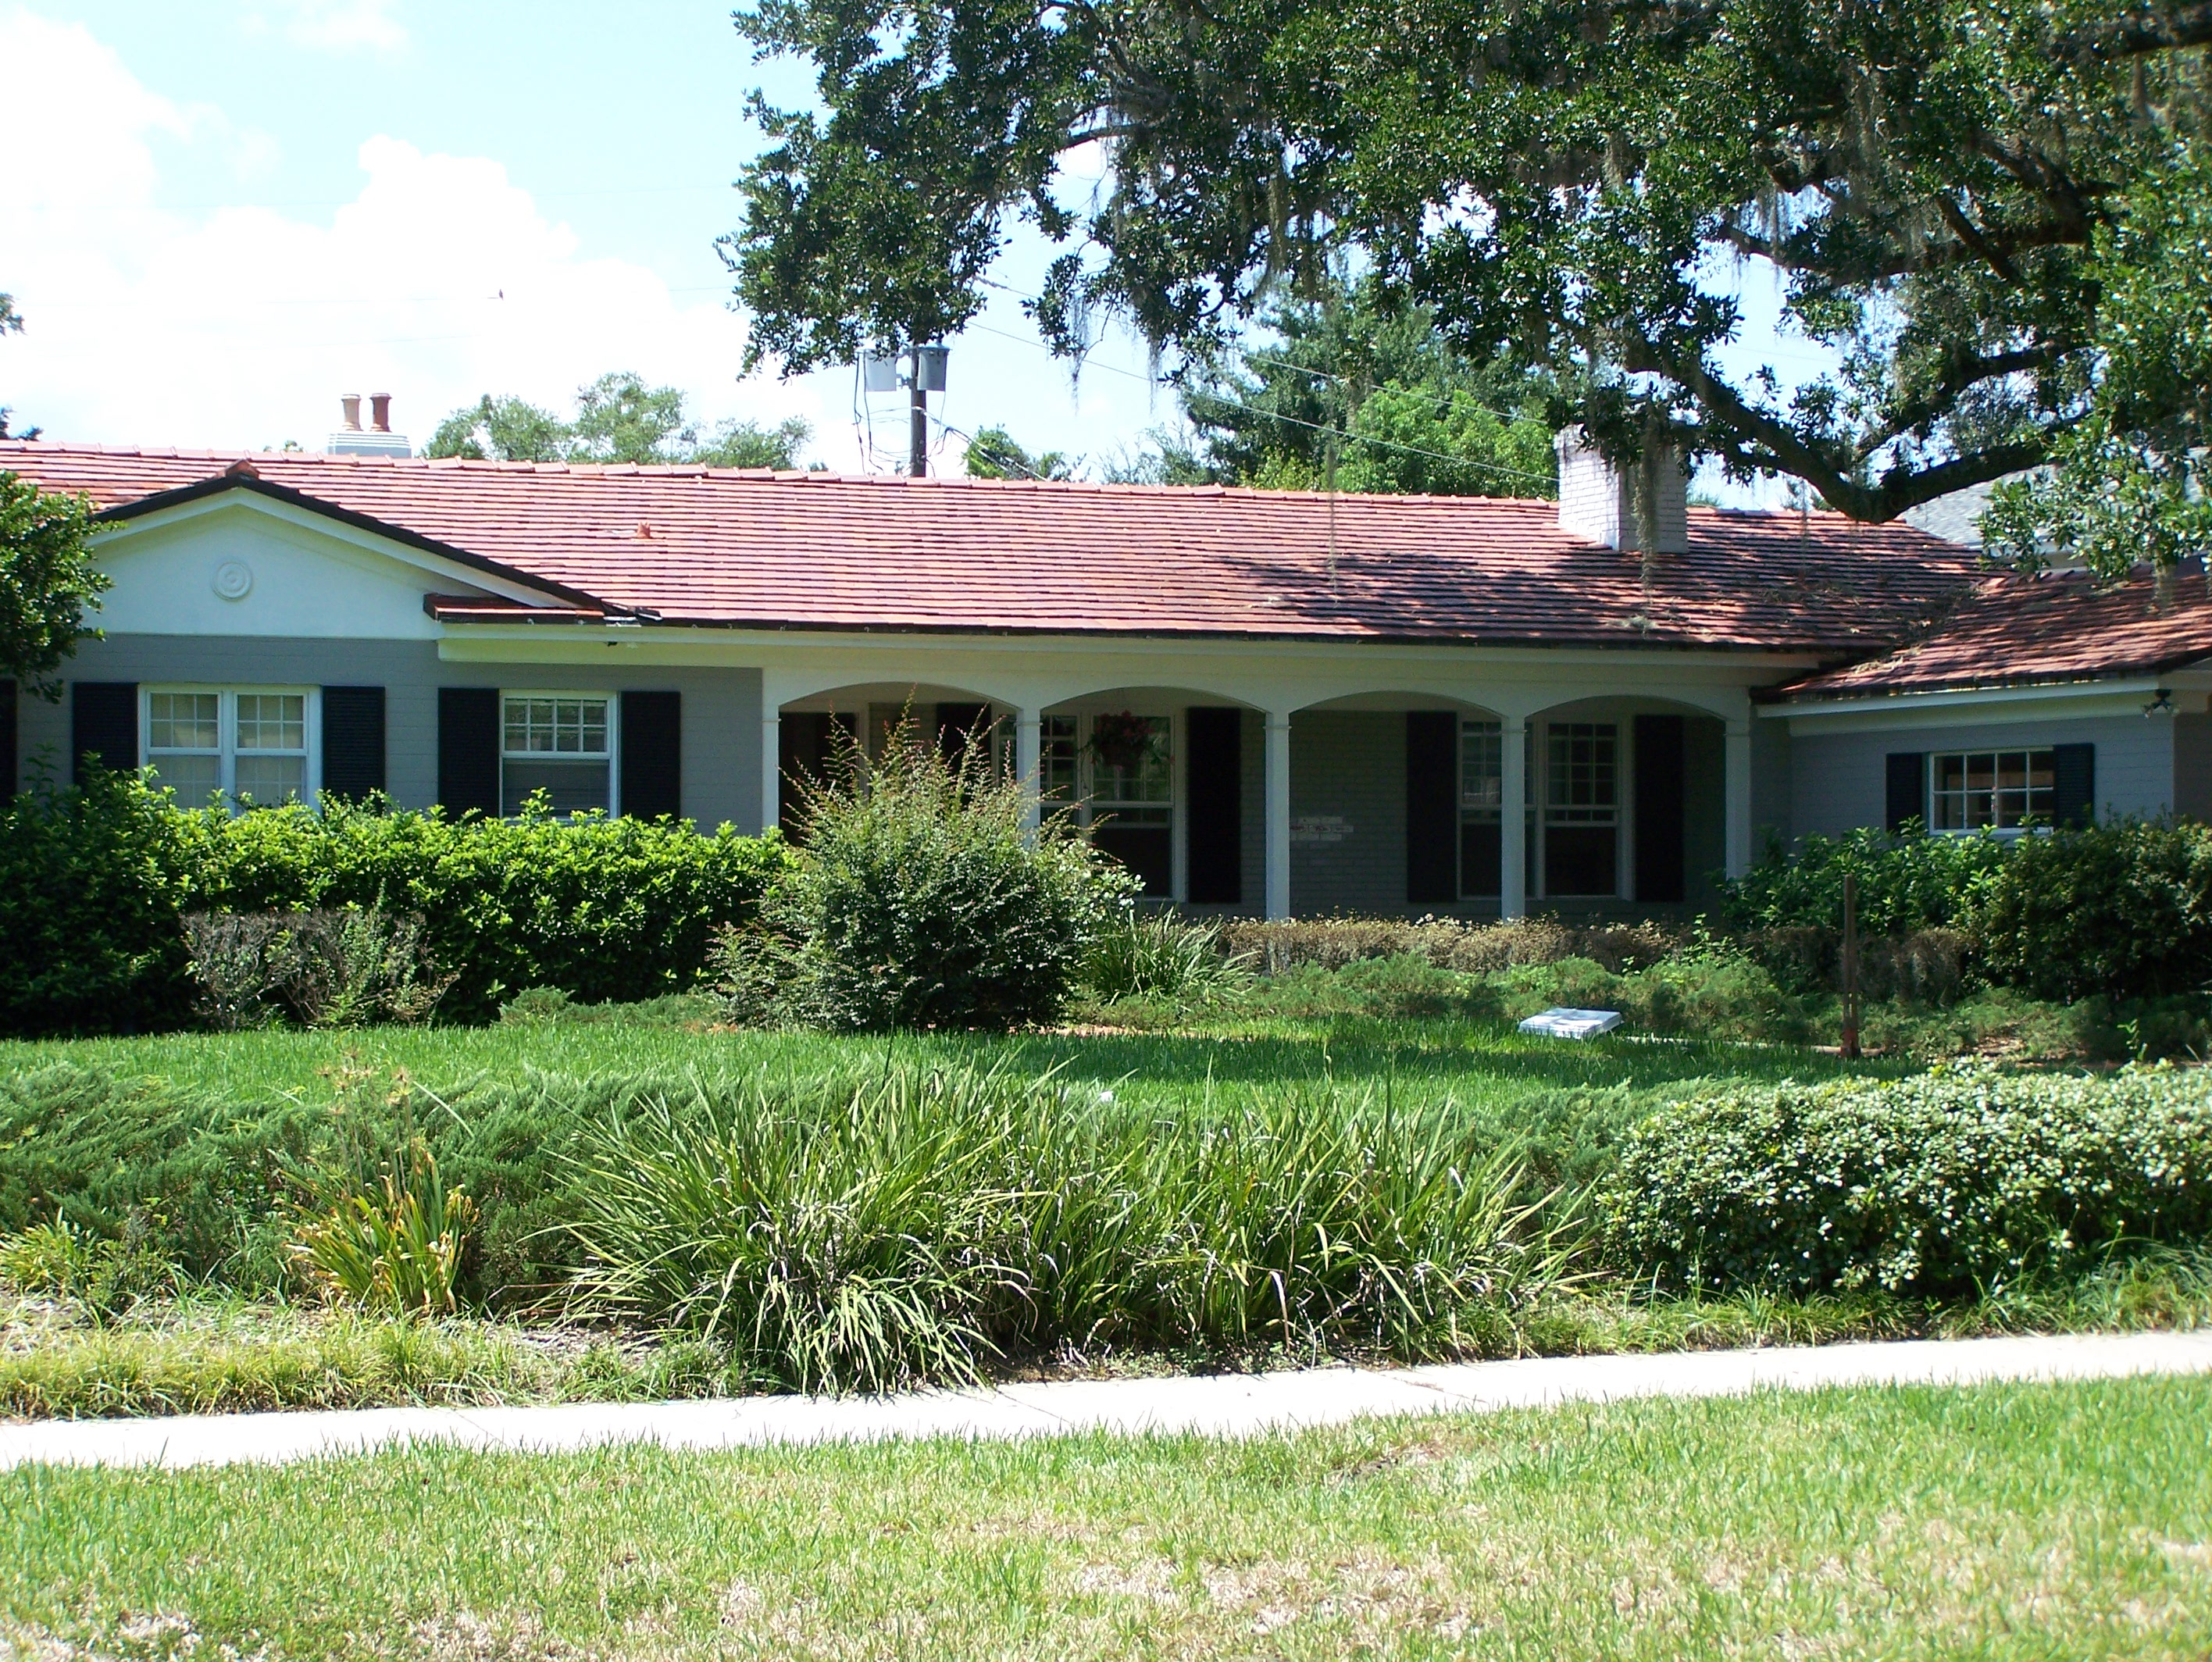 Ranch House Curb Appeal Ranch House Exterior Remodel Ideas